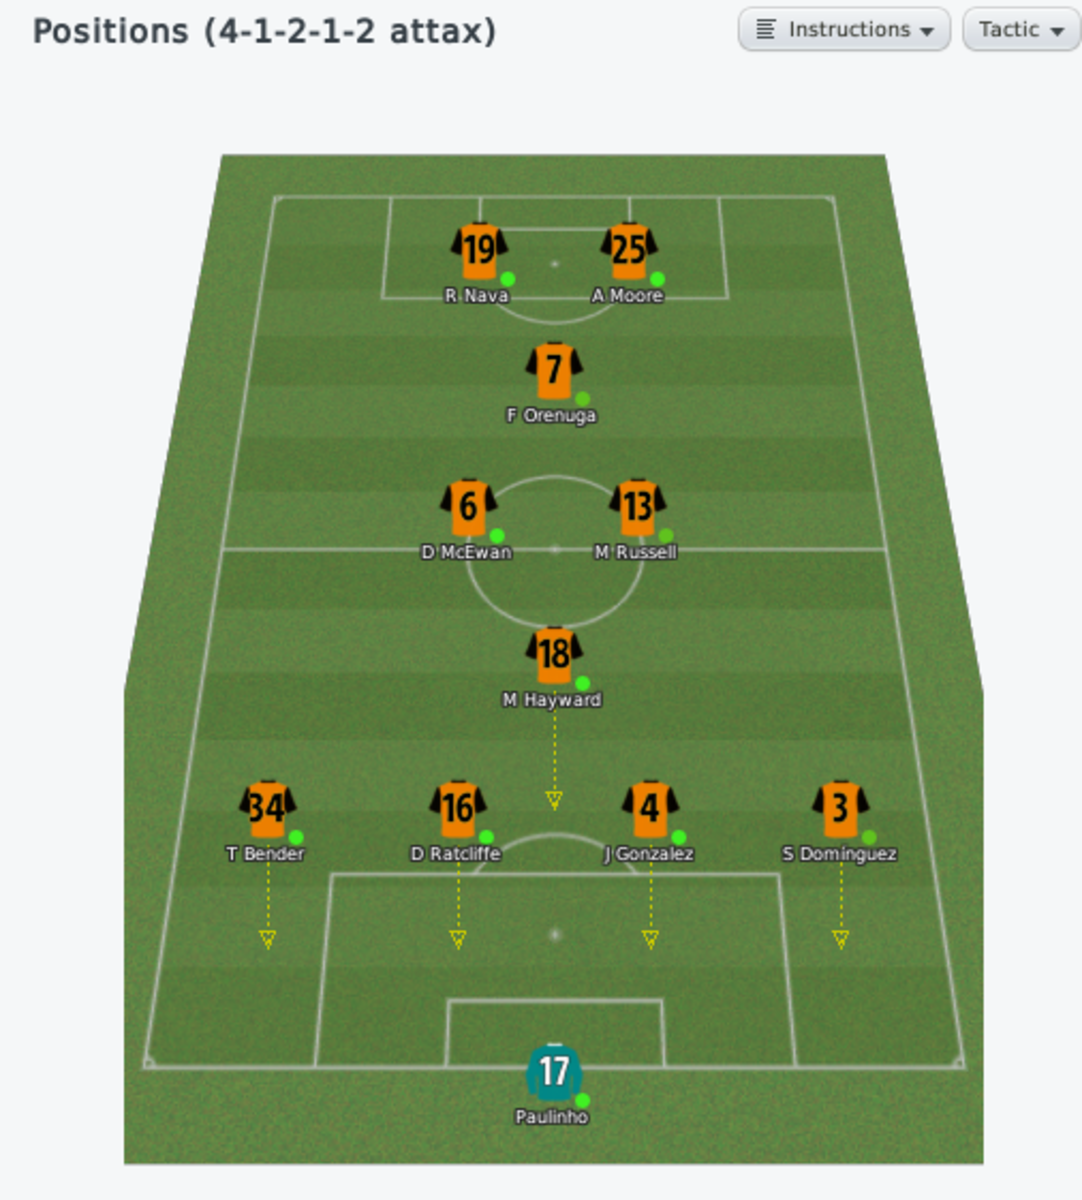 4-1-2-1-2 formation